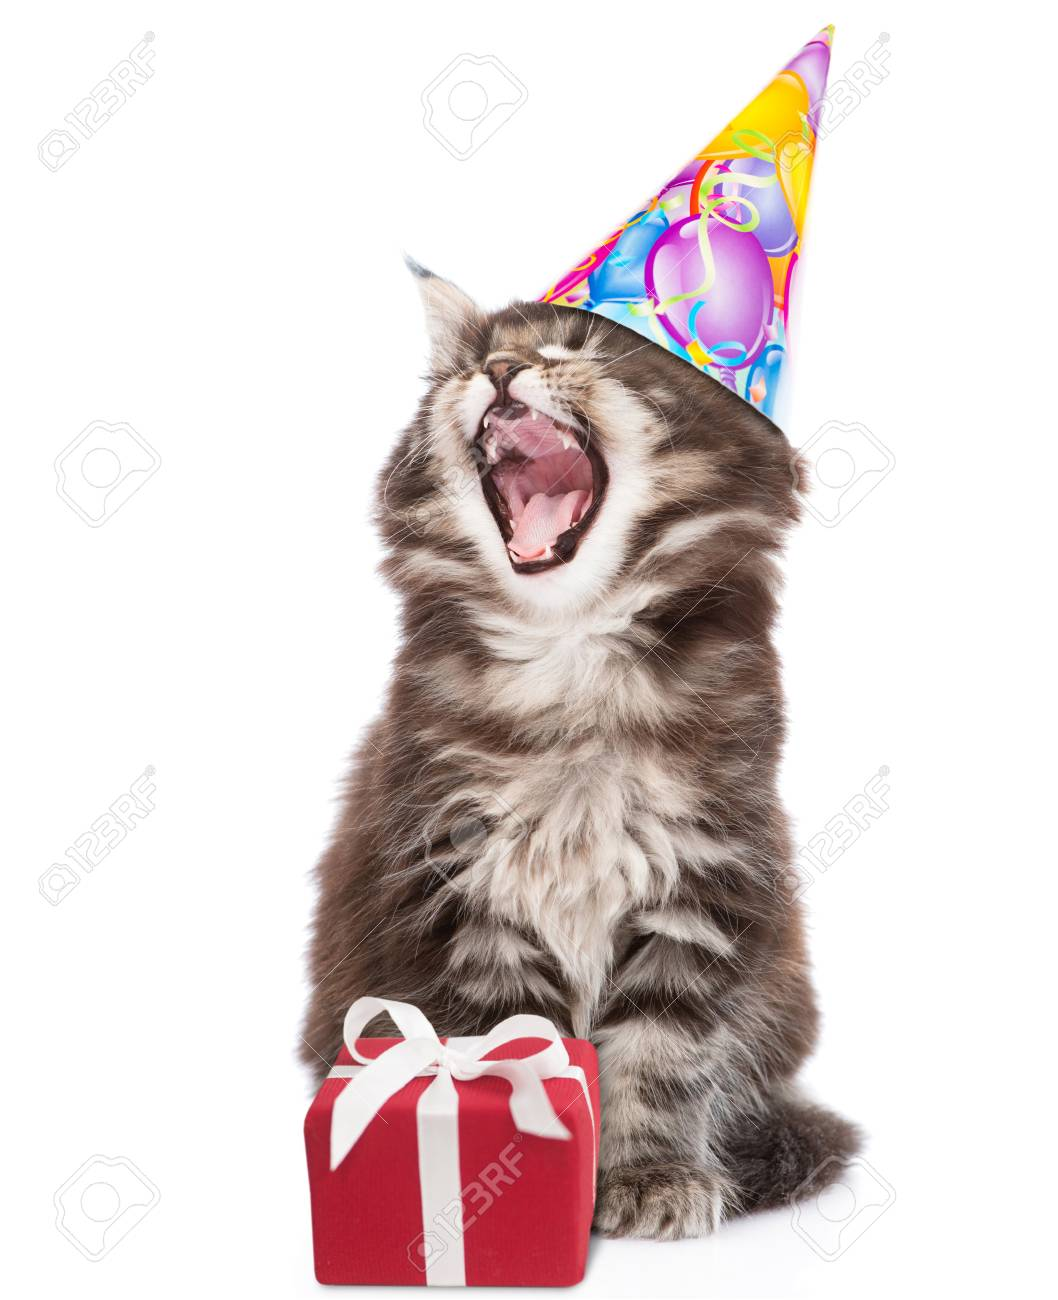 Cat In Birthday Hat With Open Mouth Sitting Near Gift Box Isolated On White Background